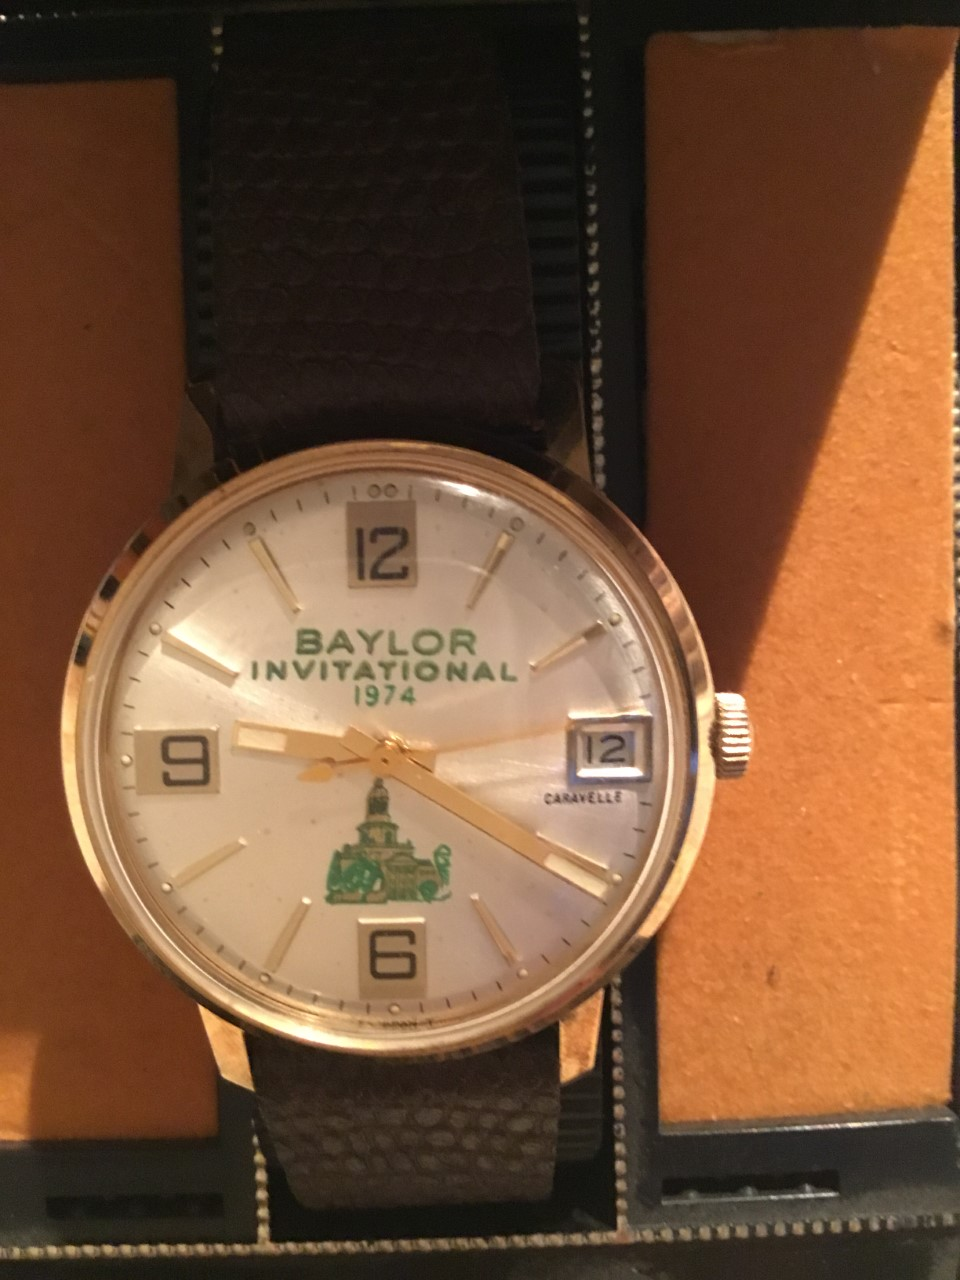 1974 watch compliments of Rey Moreno